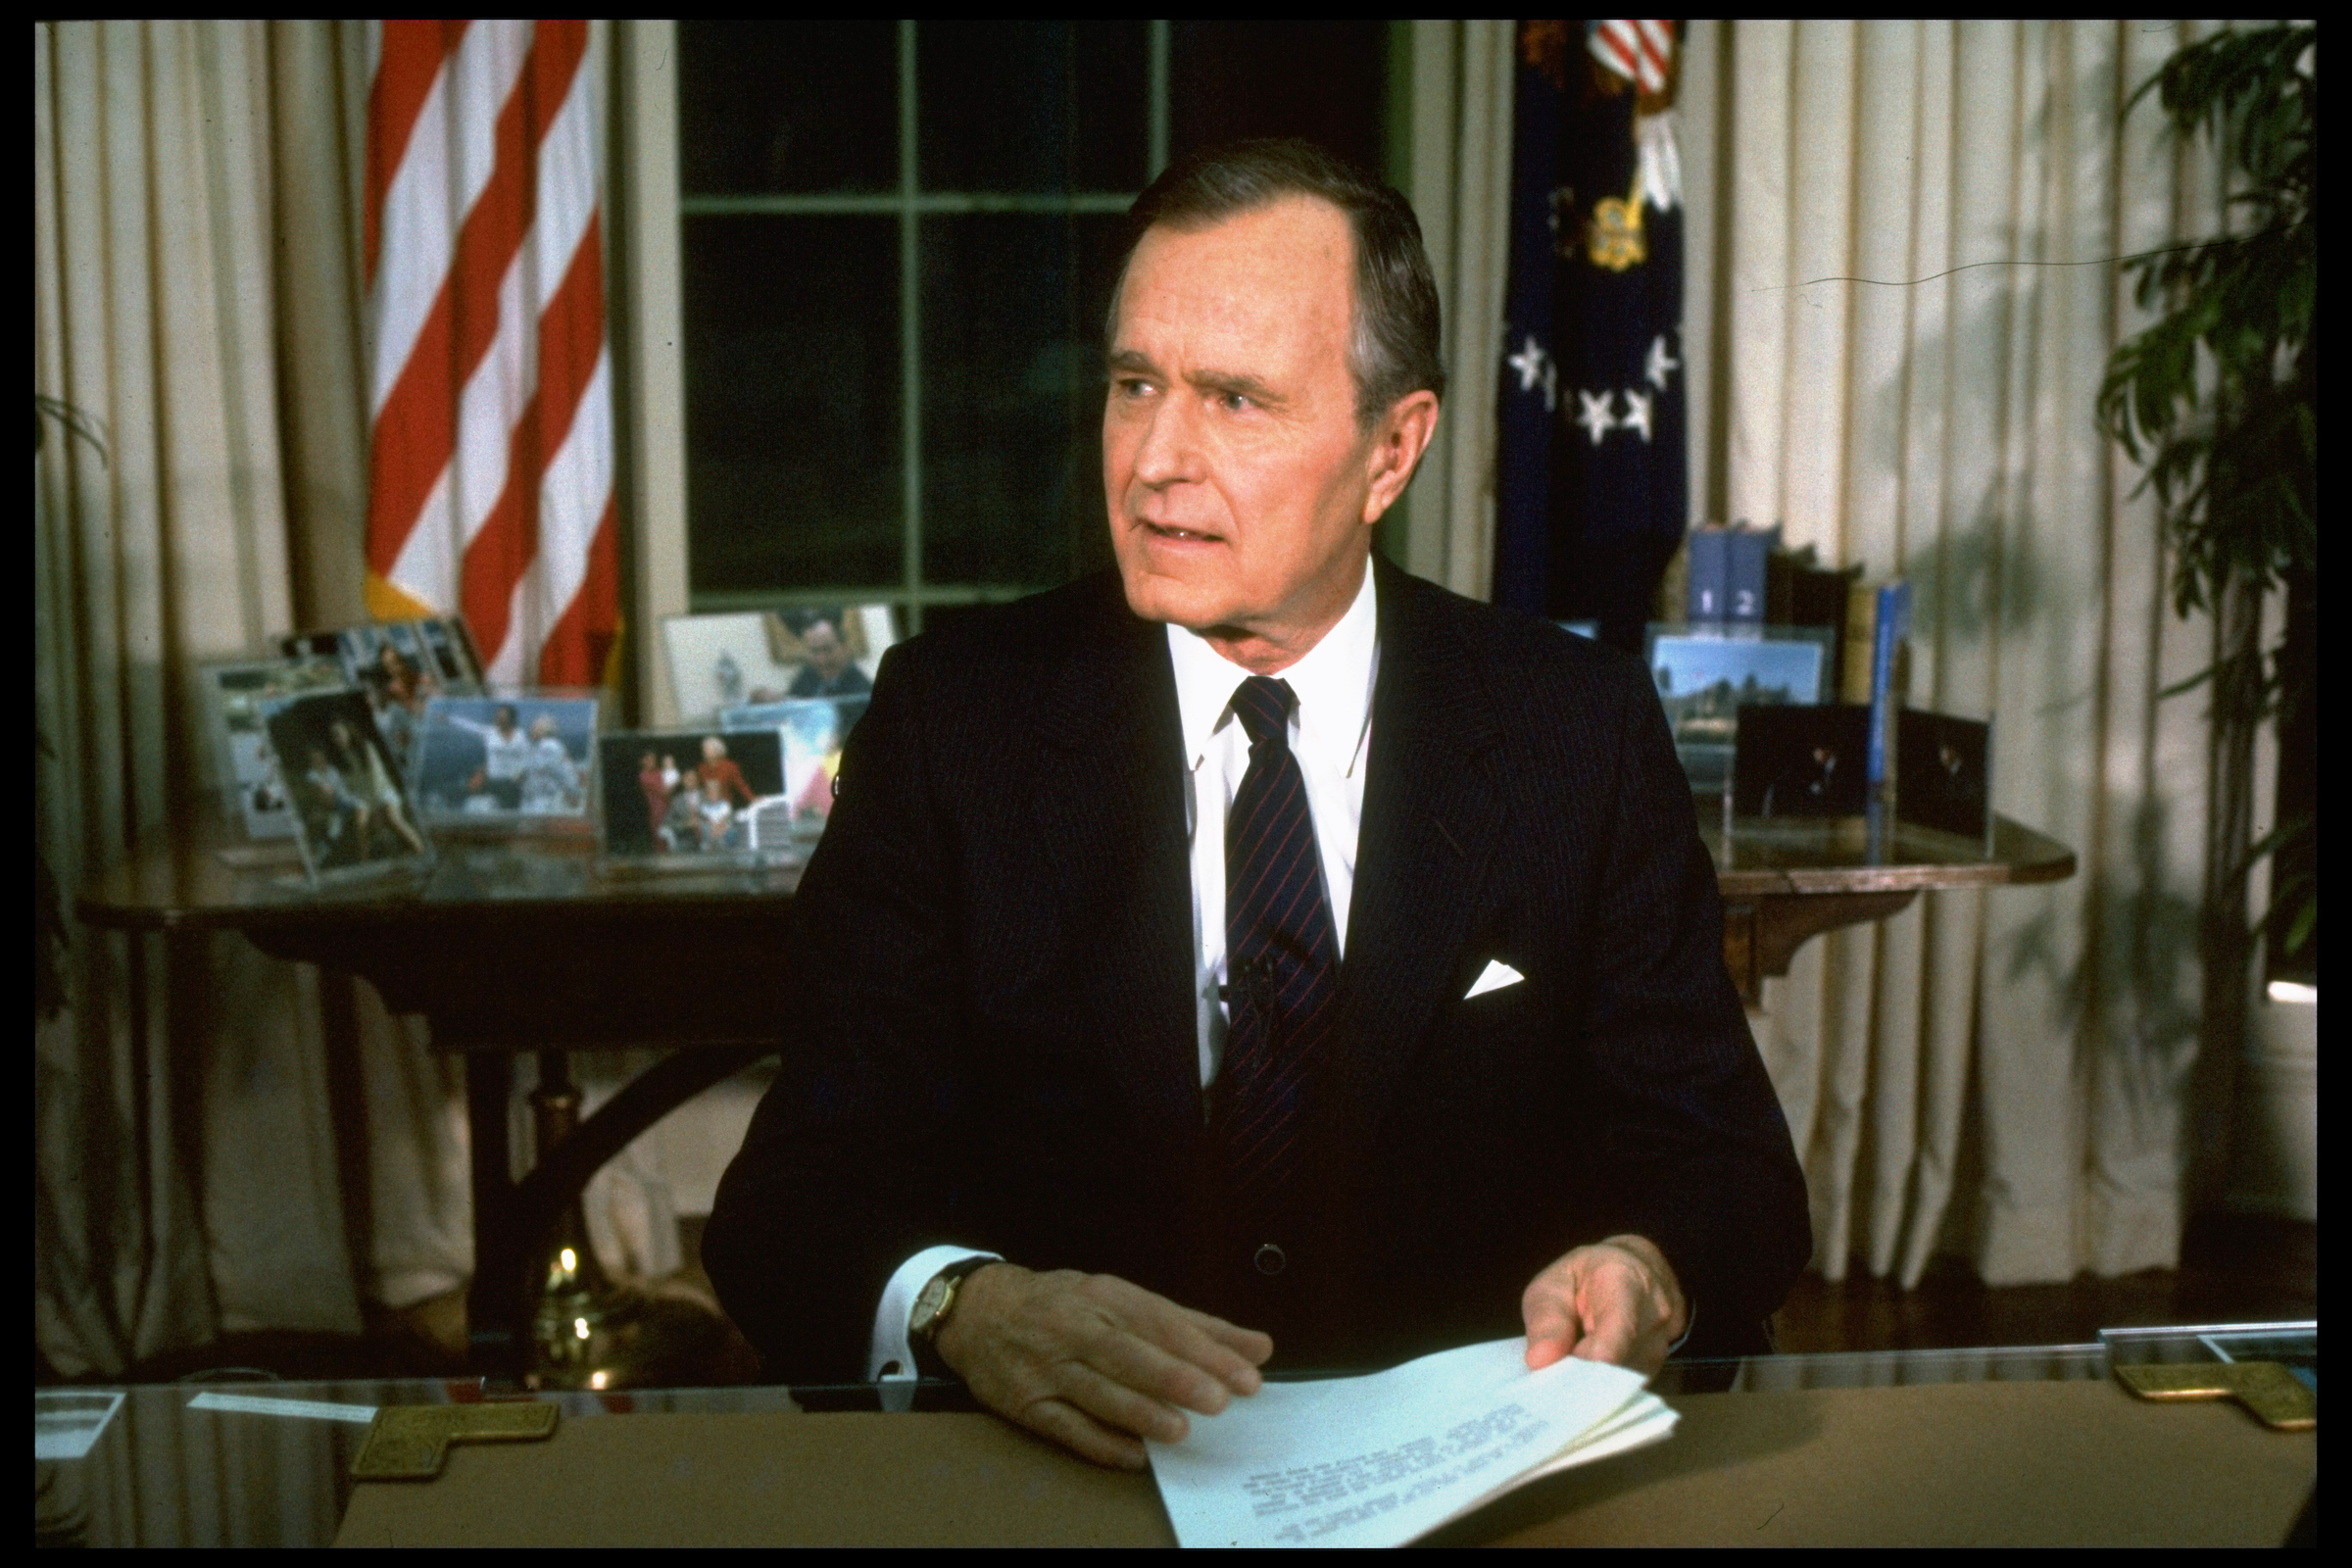 President George H.W. Bush addresses the nation from the Oval Office about the start of Operation Desert Storm.